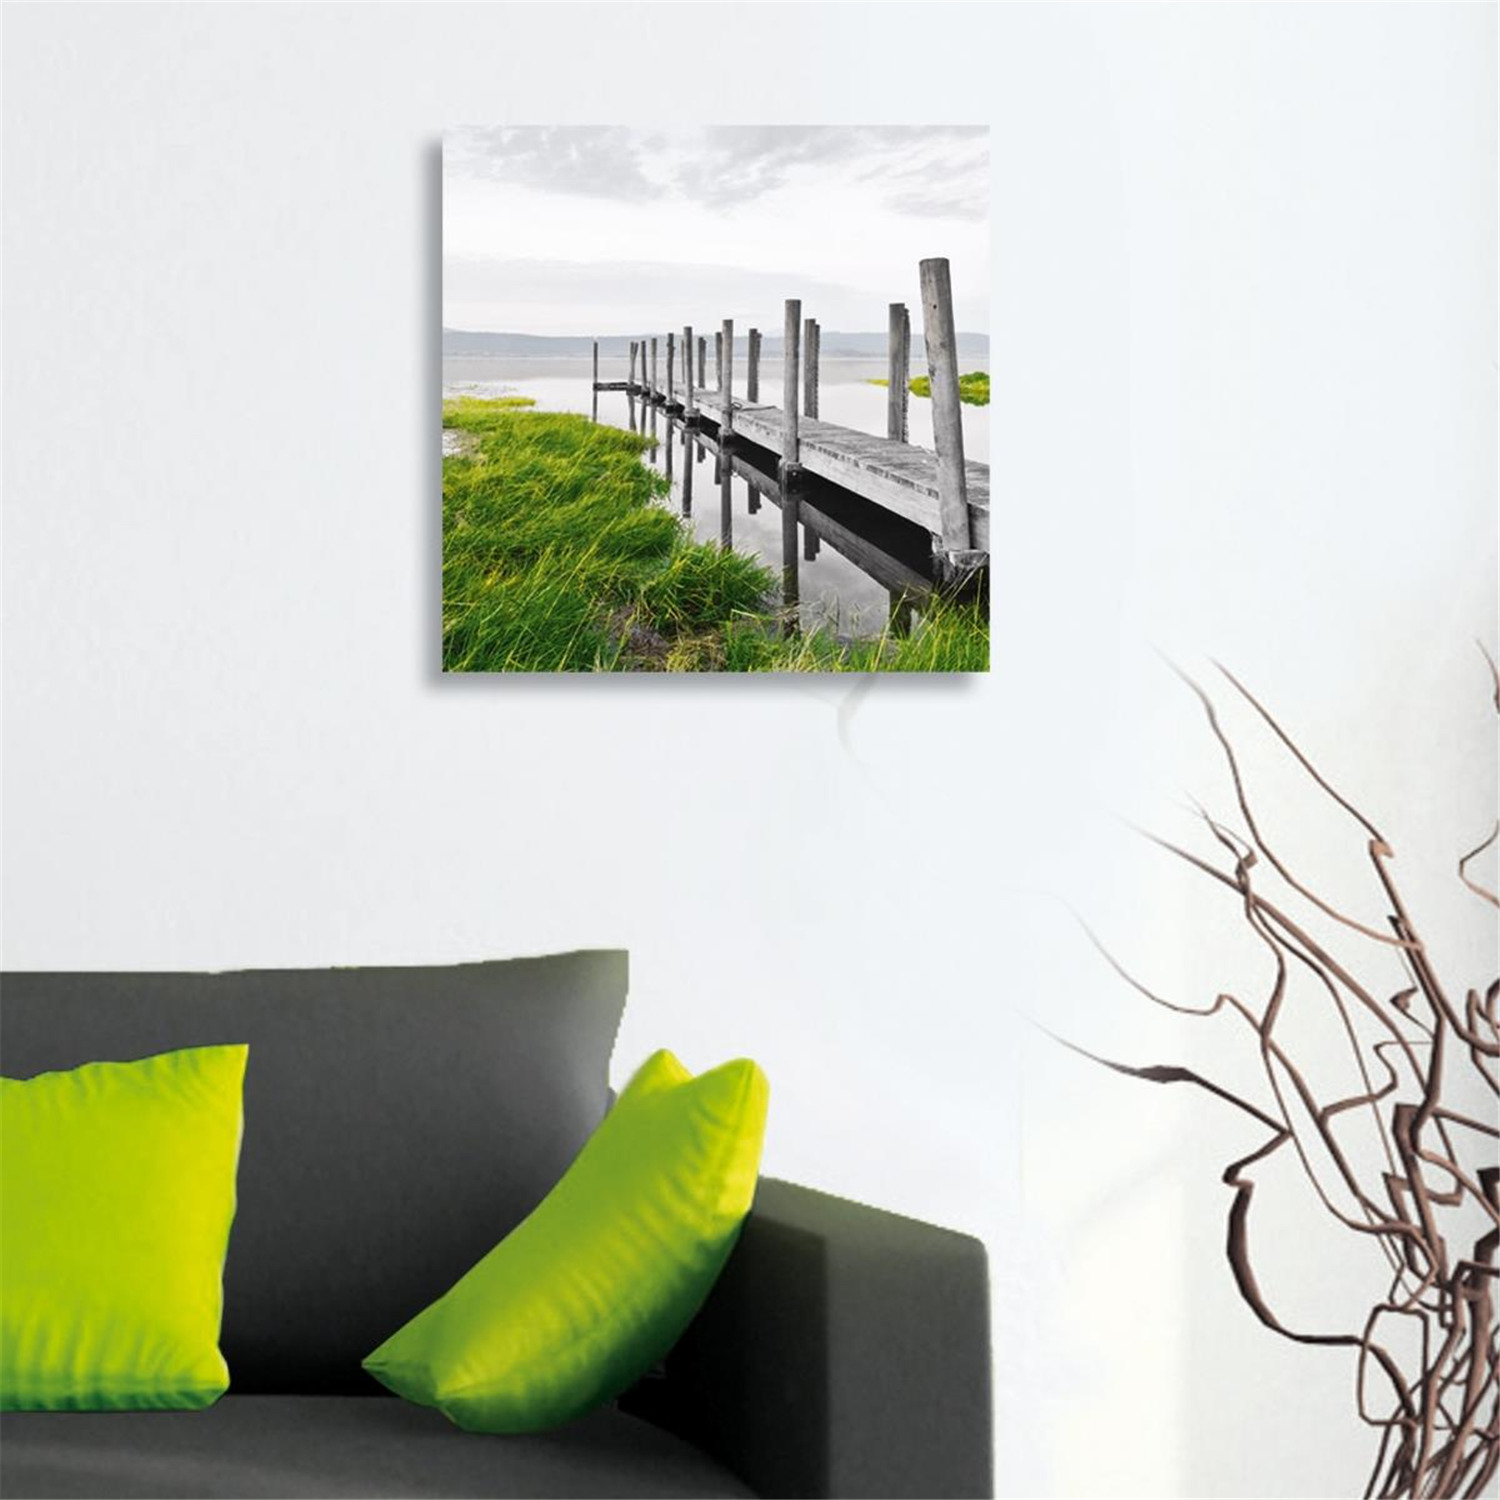 platin art deco glass wall decor art on glass idyllic jetty by oj